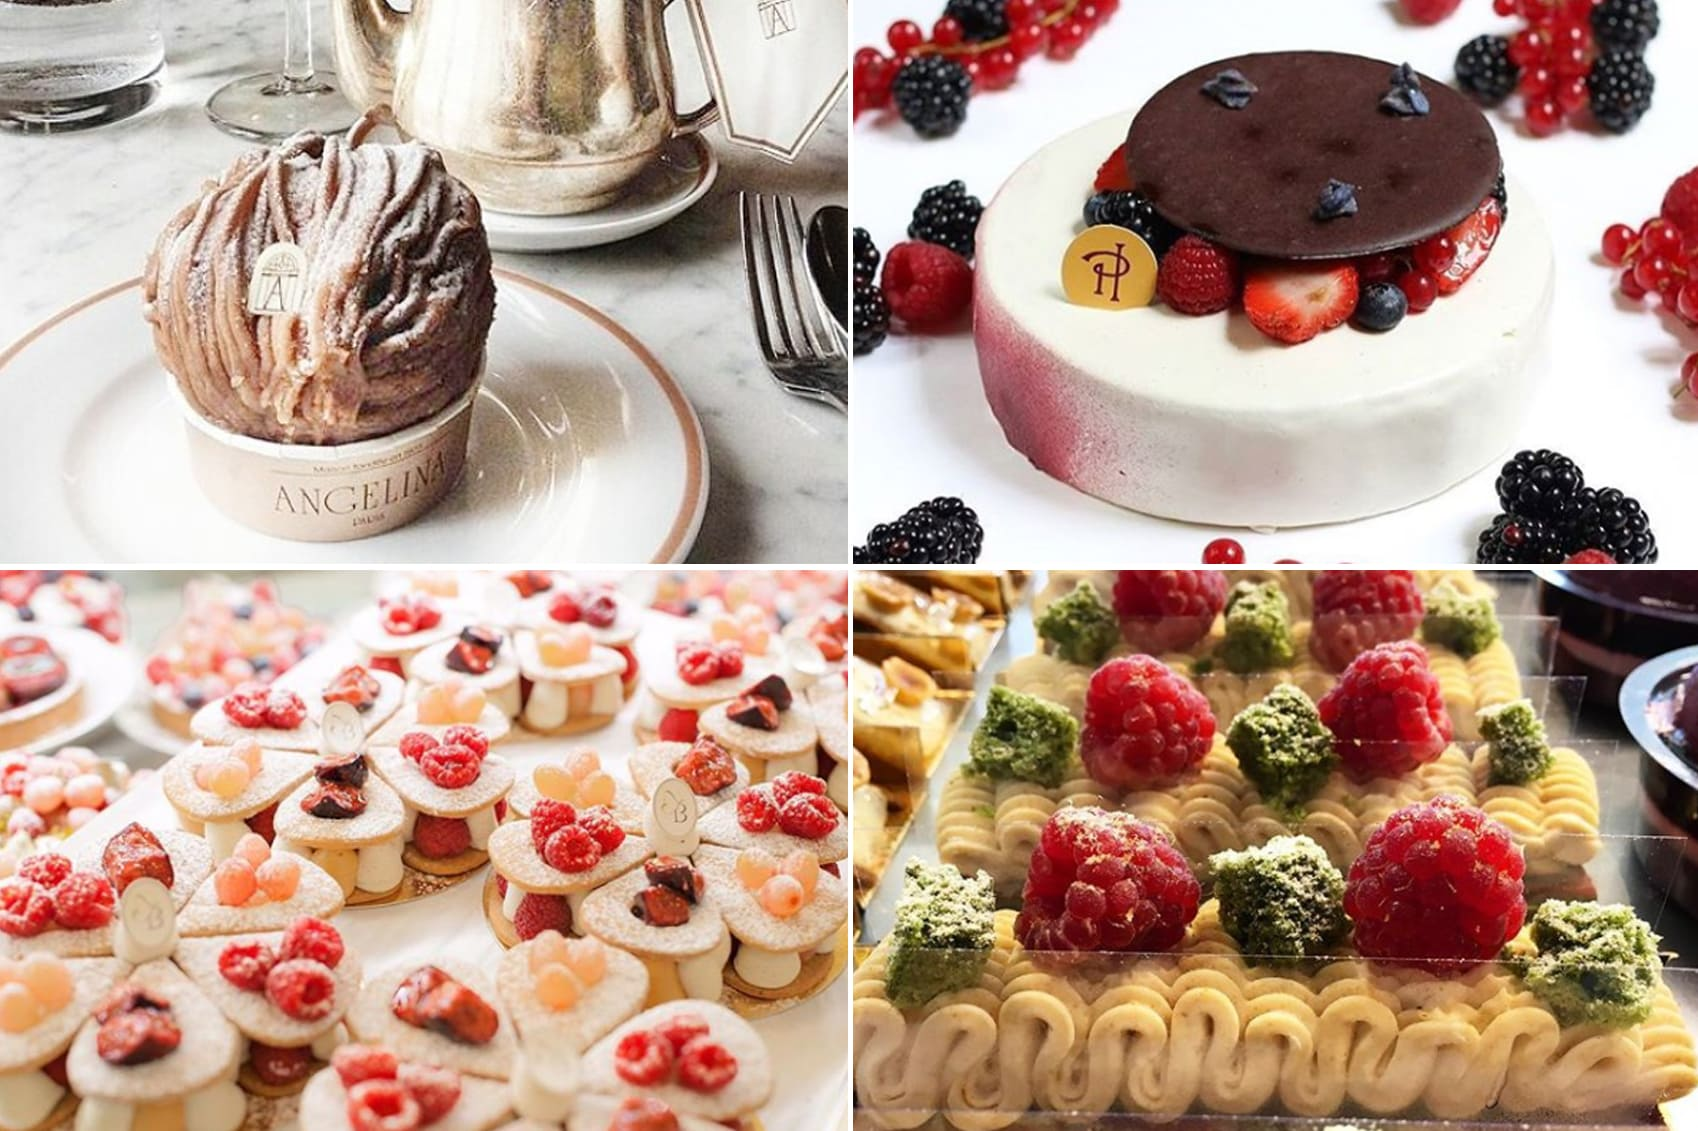 Best French Pastries